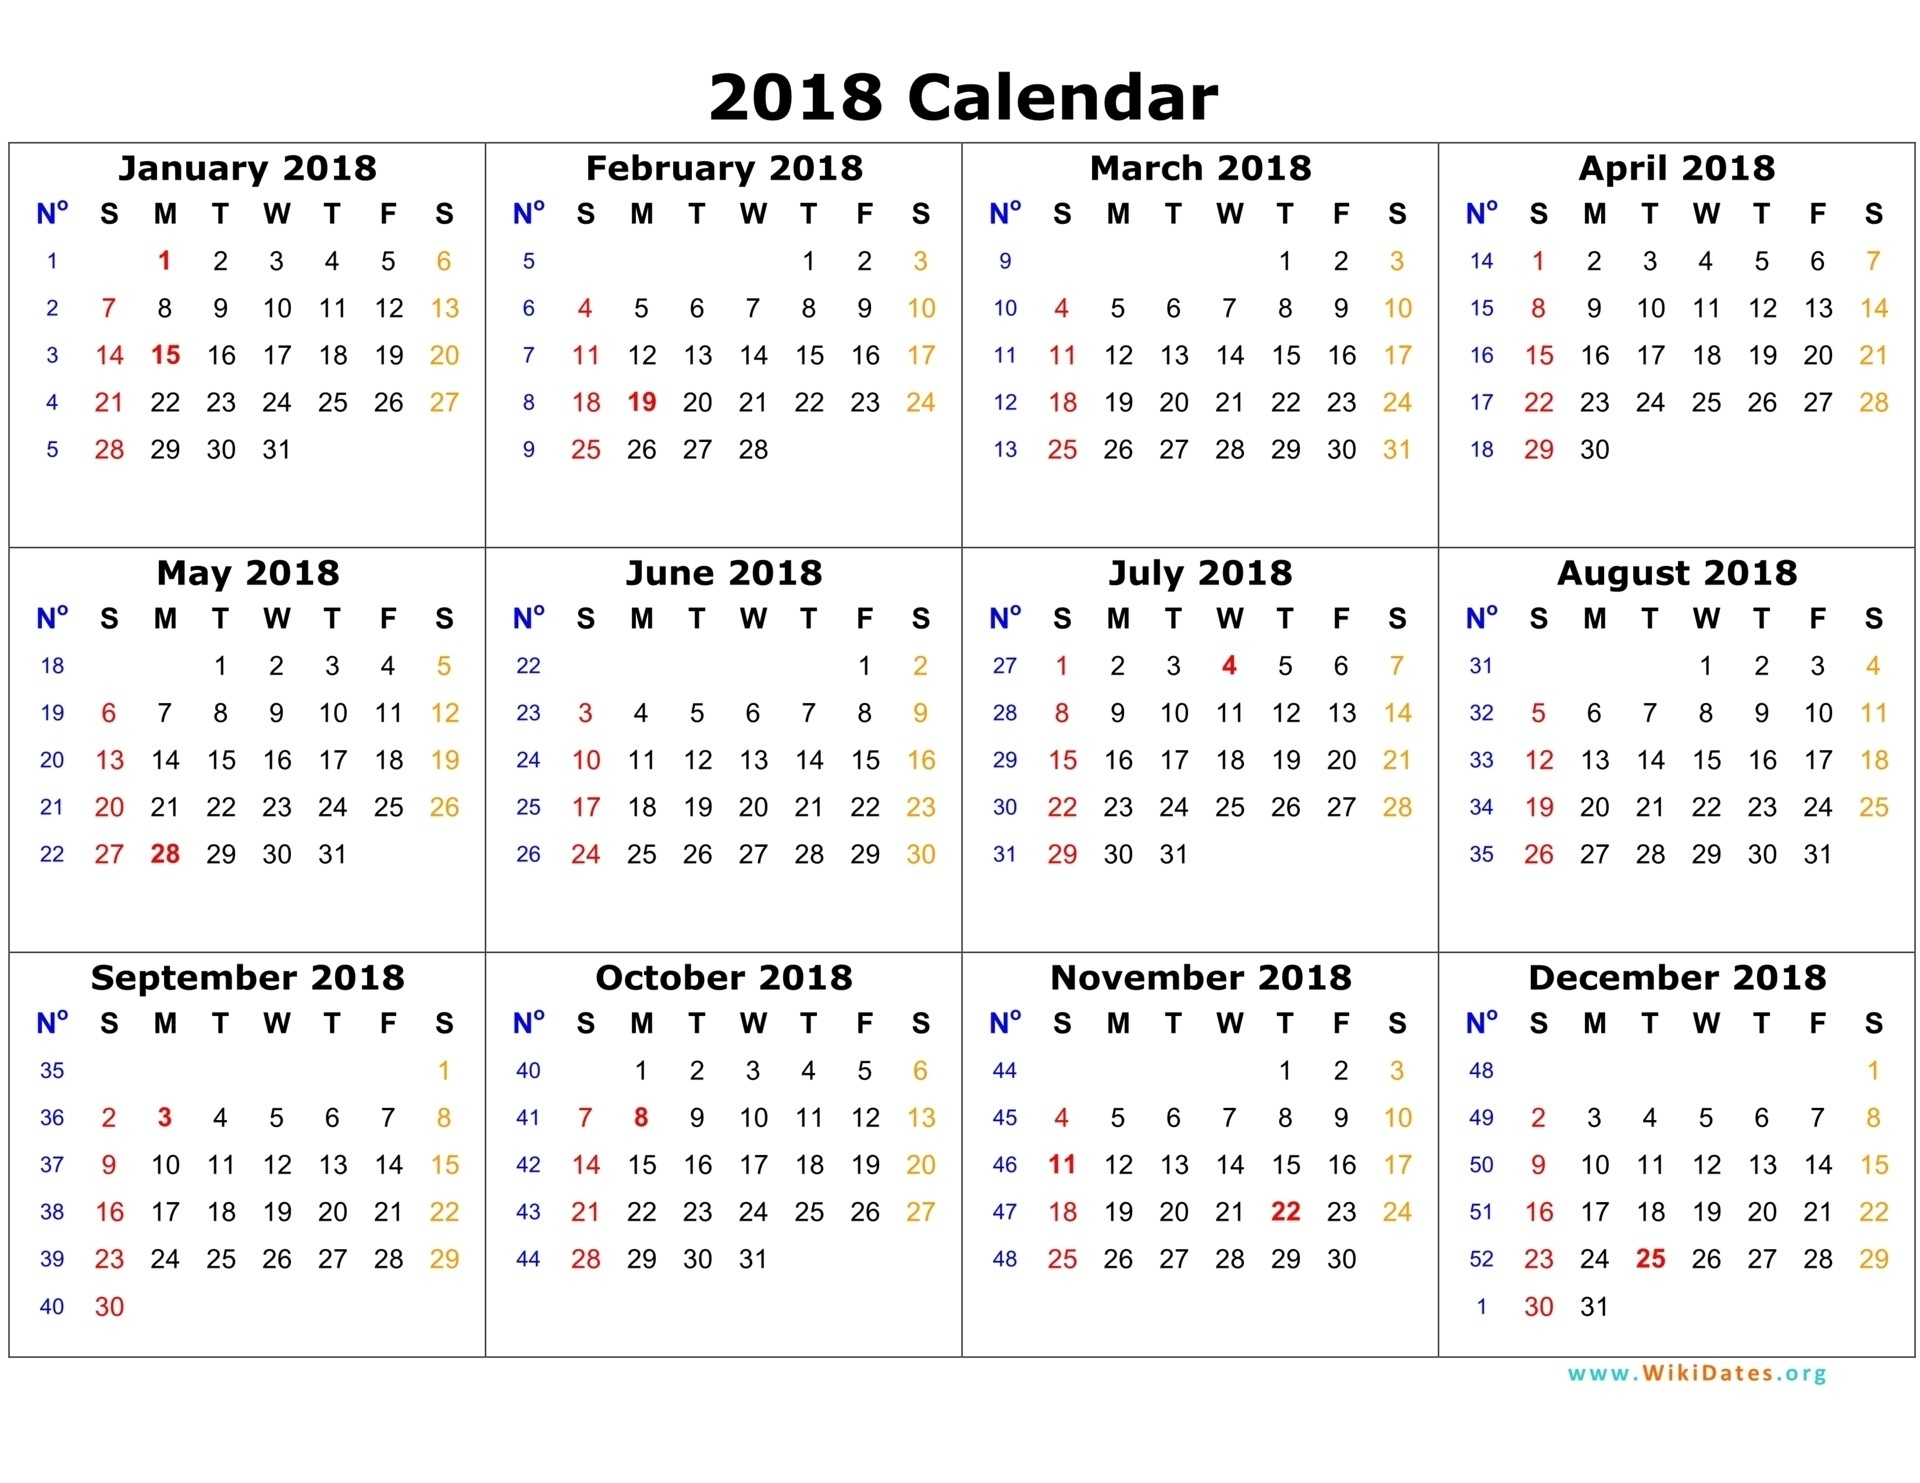 2018 Calendar Template 03 On 12 Month Calendar 2018 Template - Free intended for Free Printable 12 Month Blank Calendar